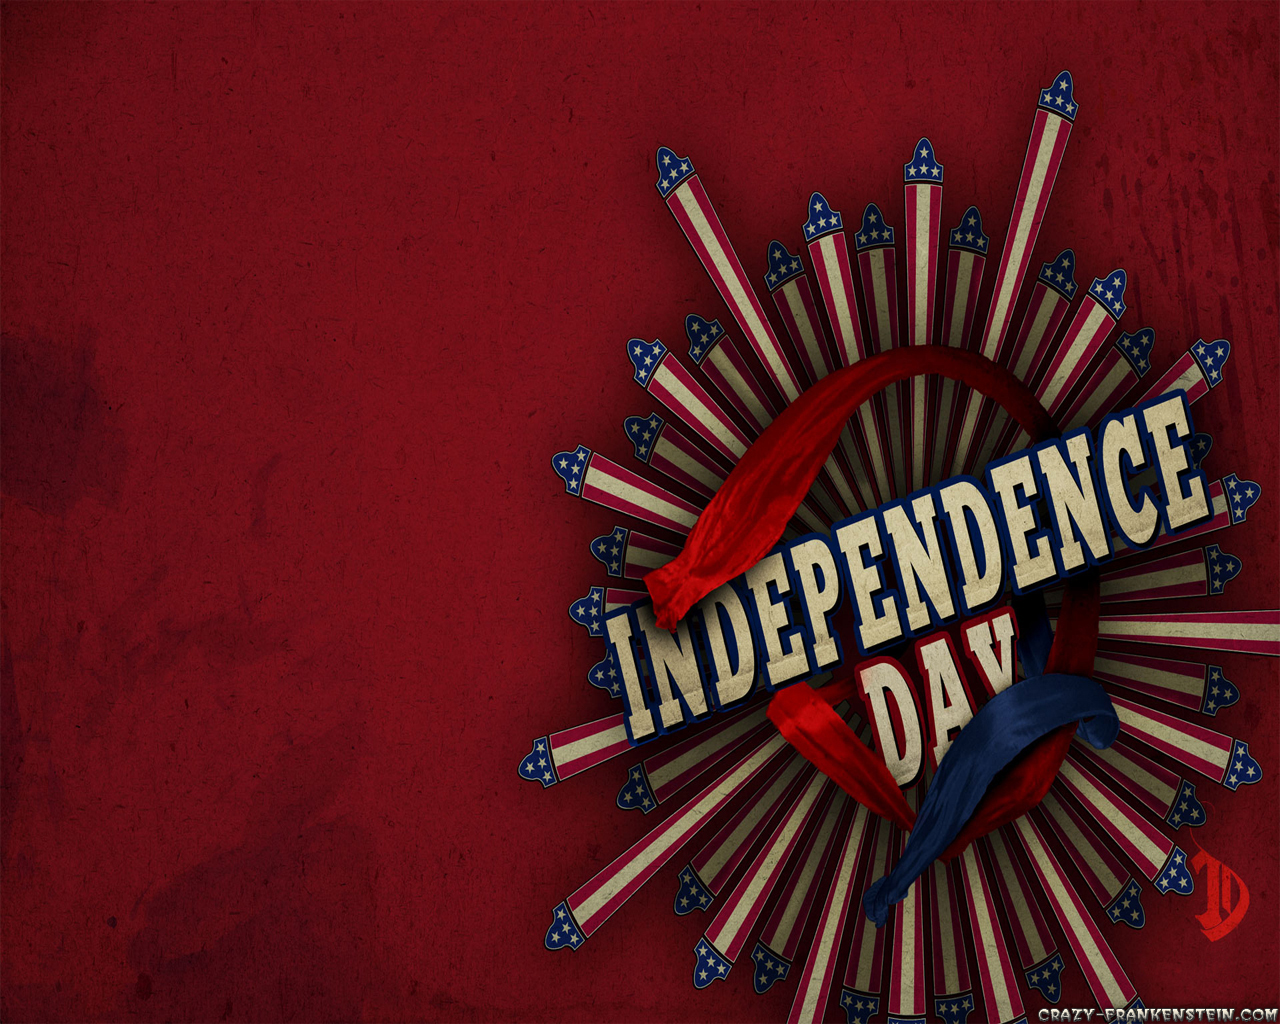 http://4.bp.blogspot.com/-8HXzIA6H5yU/T_SdzUEIdvI/AAAAAAAADt8/LXeGwY2-O0E/s1600/USA-Independence-Day-Wallpapers-.jpg